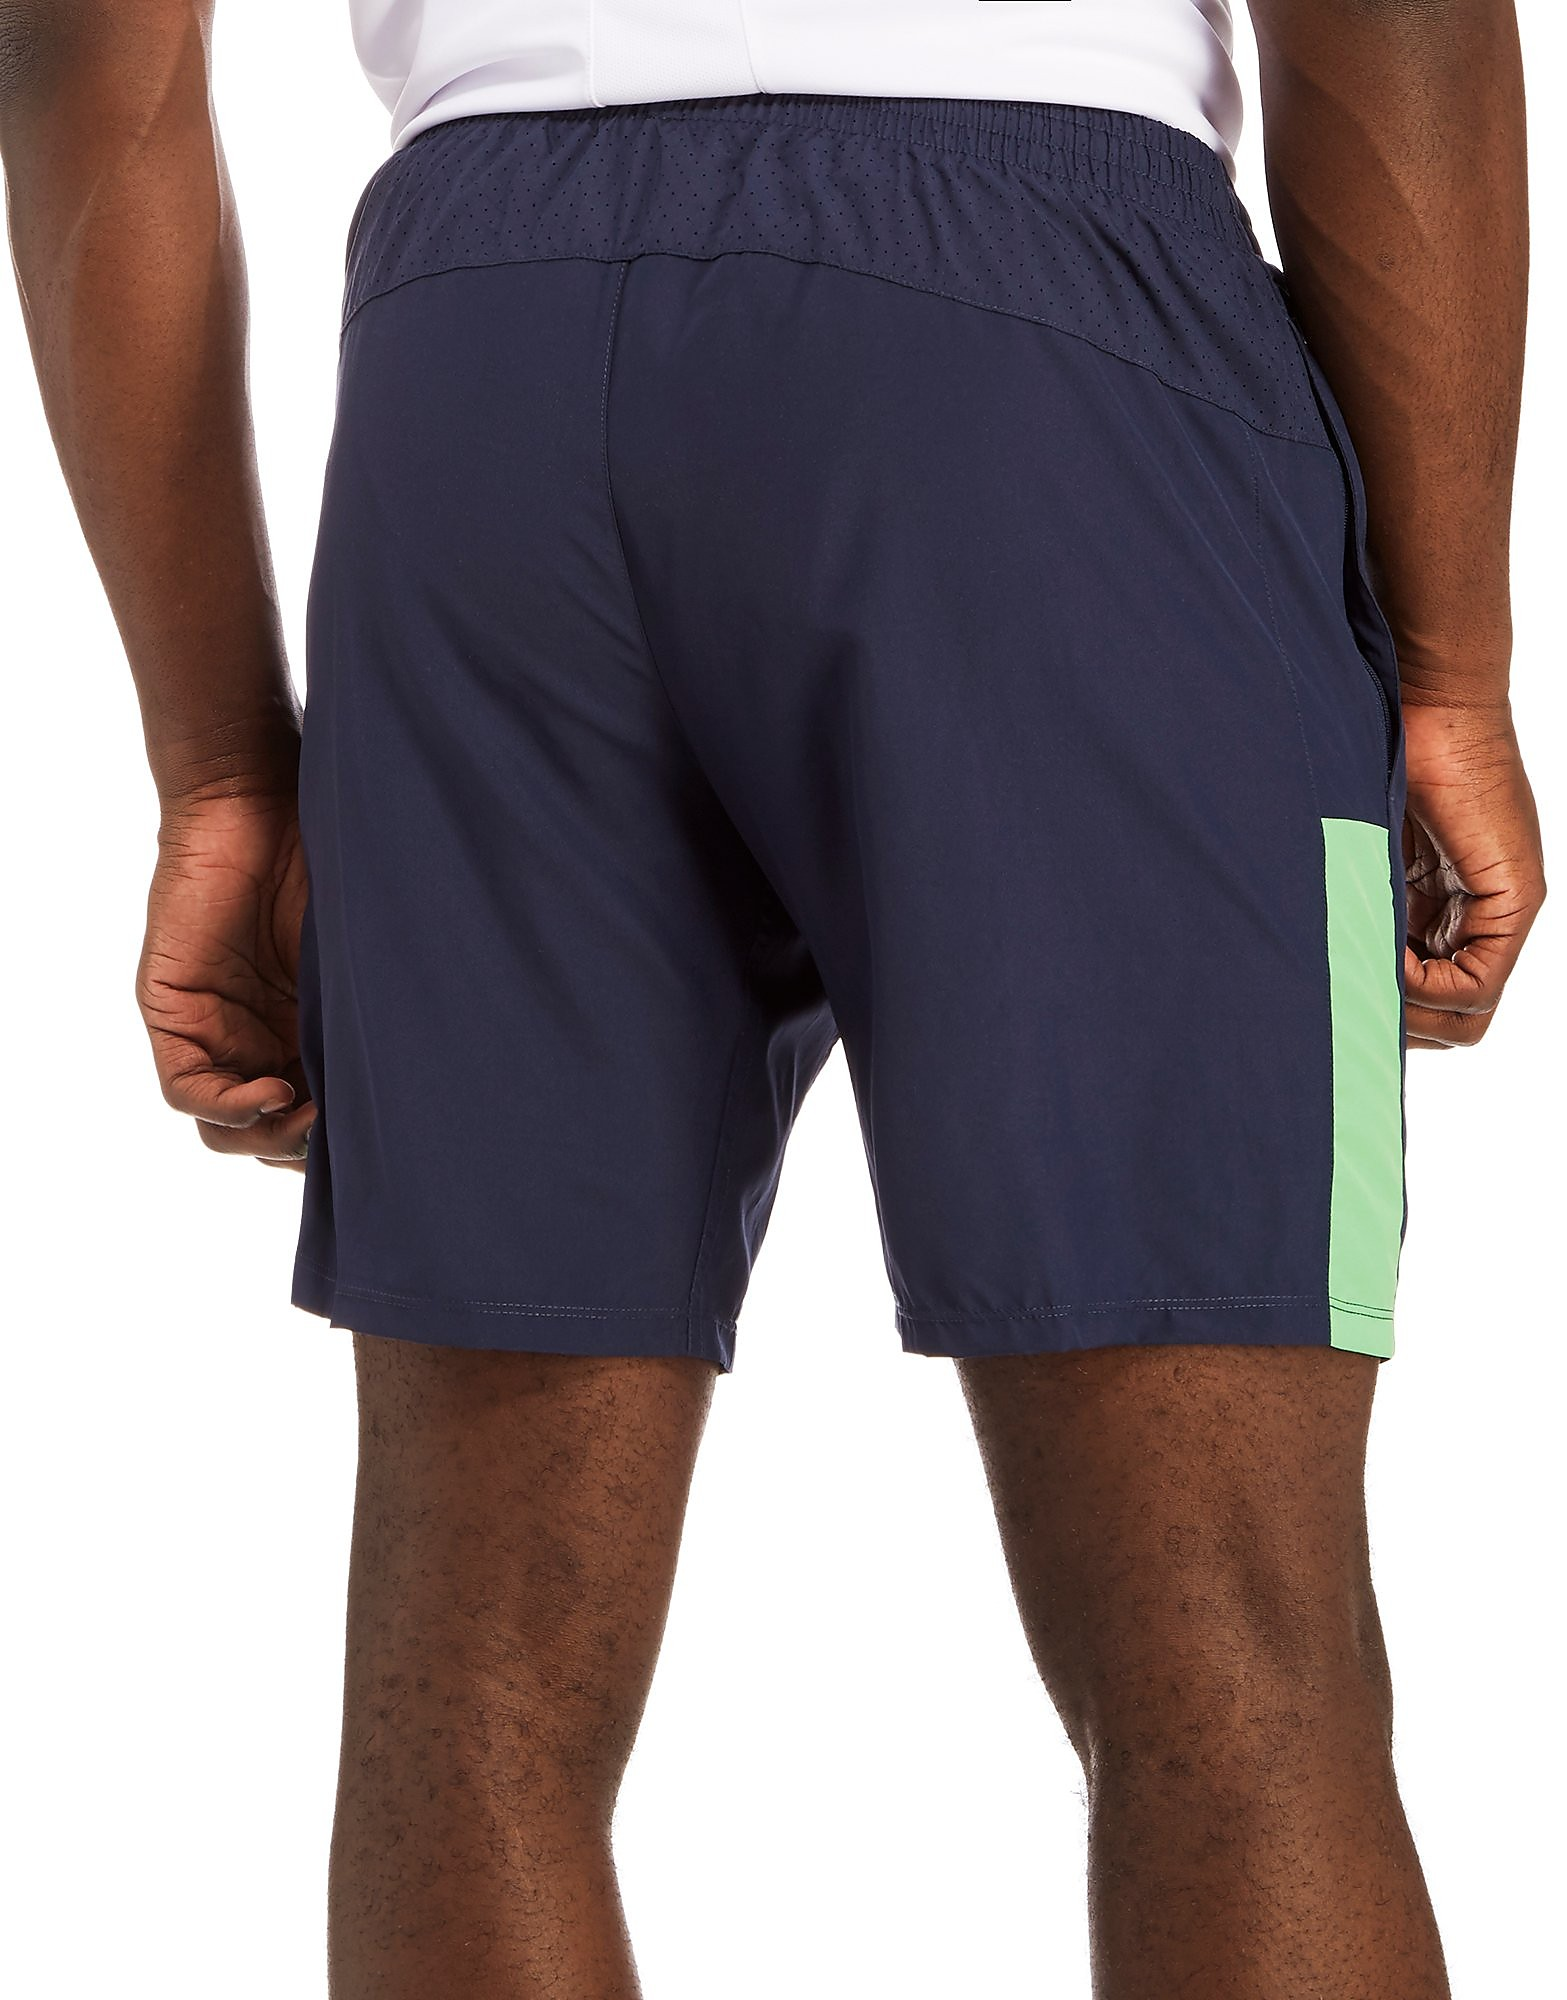 Umbro Republic of Ireland Training Shorts